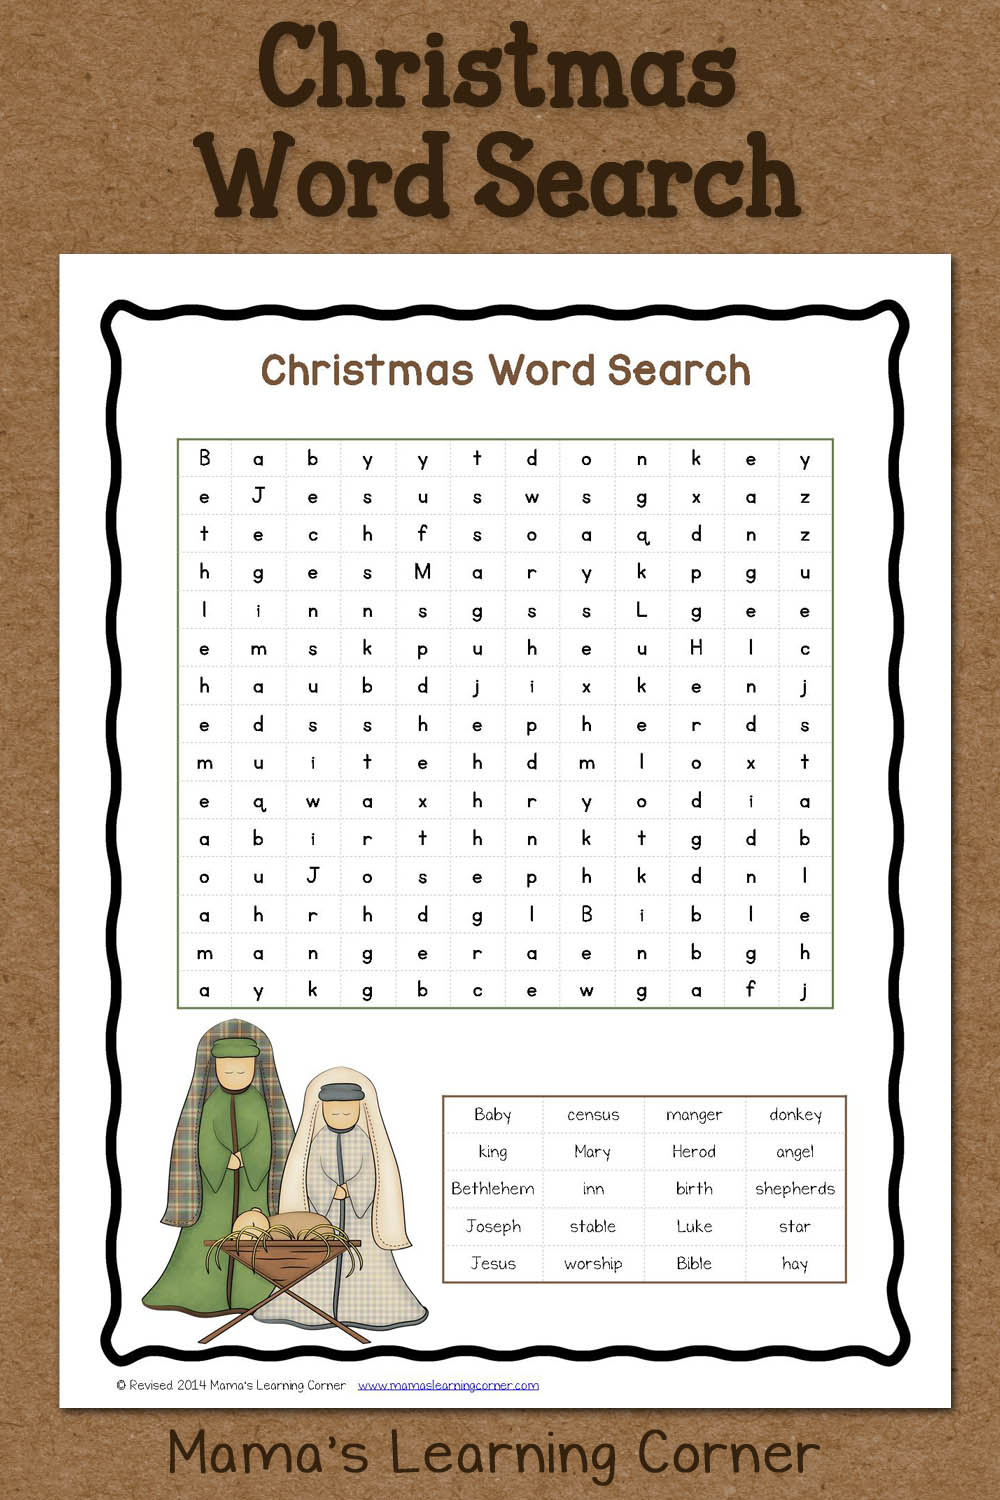 Christmas Word Search: Free Printable - Mamas Learning Corner | Christian Christmas Worksheets Printable Free